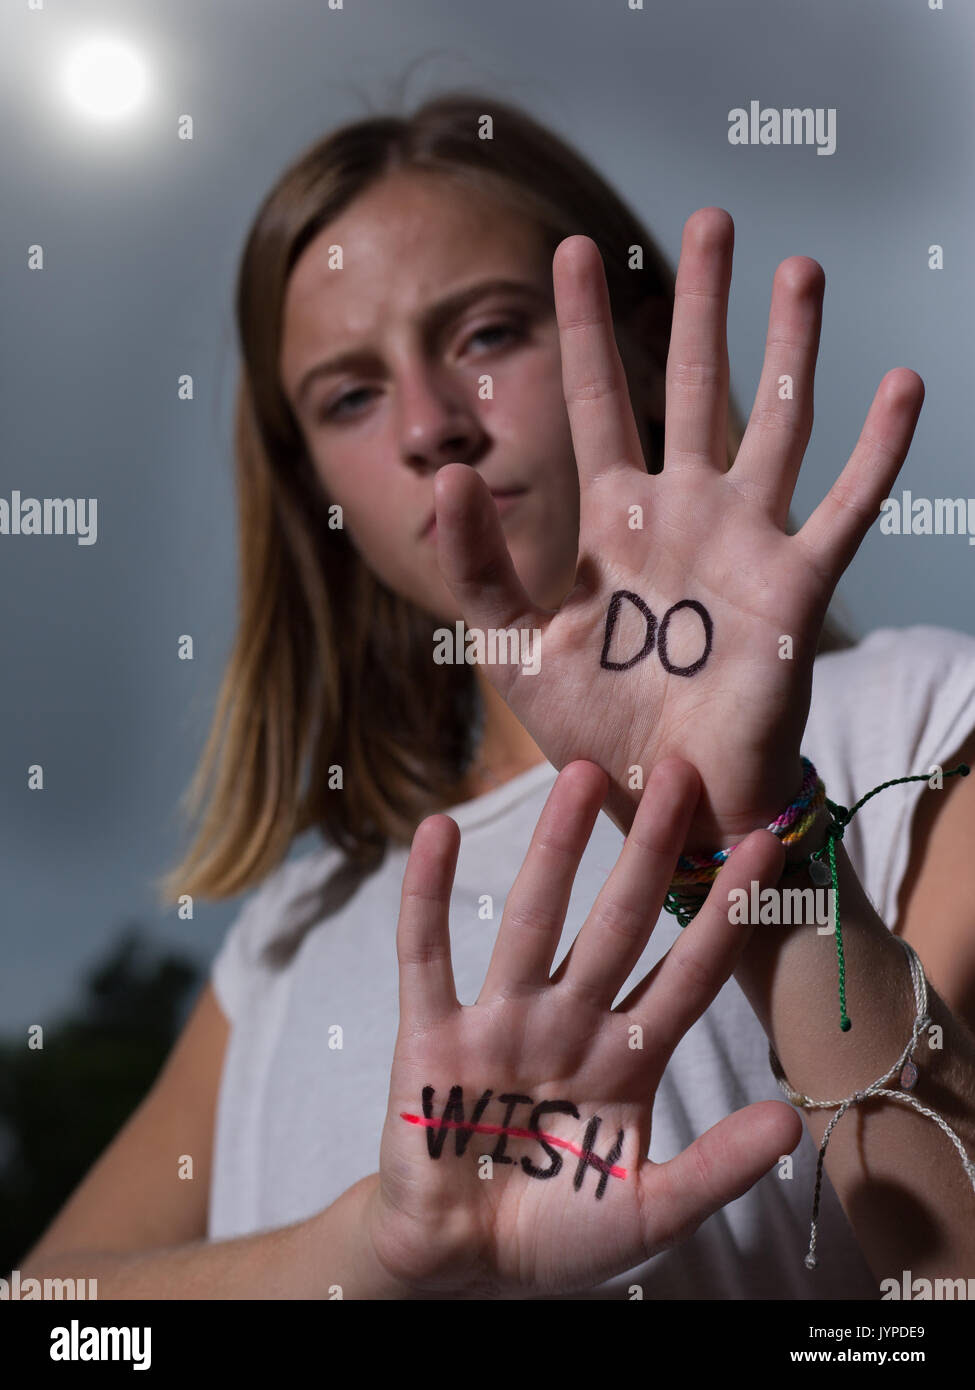 Teenage Girl Hold Up Hands With Motivational Quotes Written On Palms